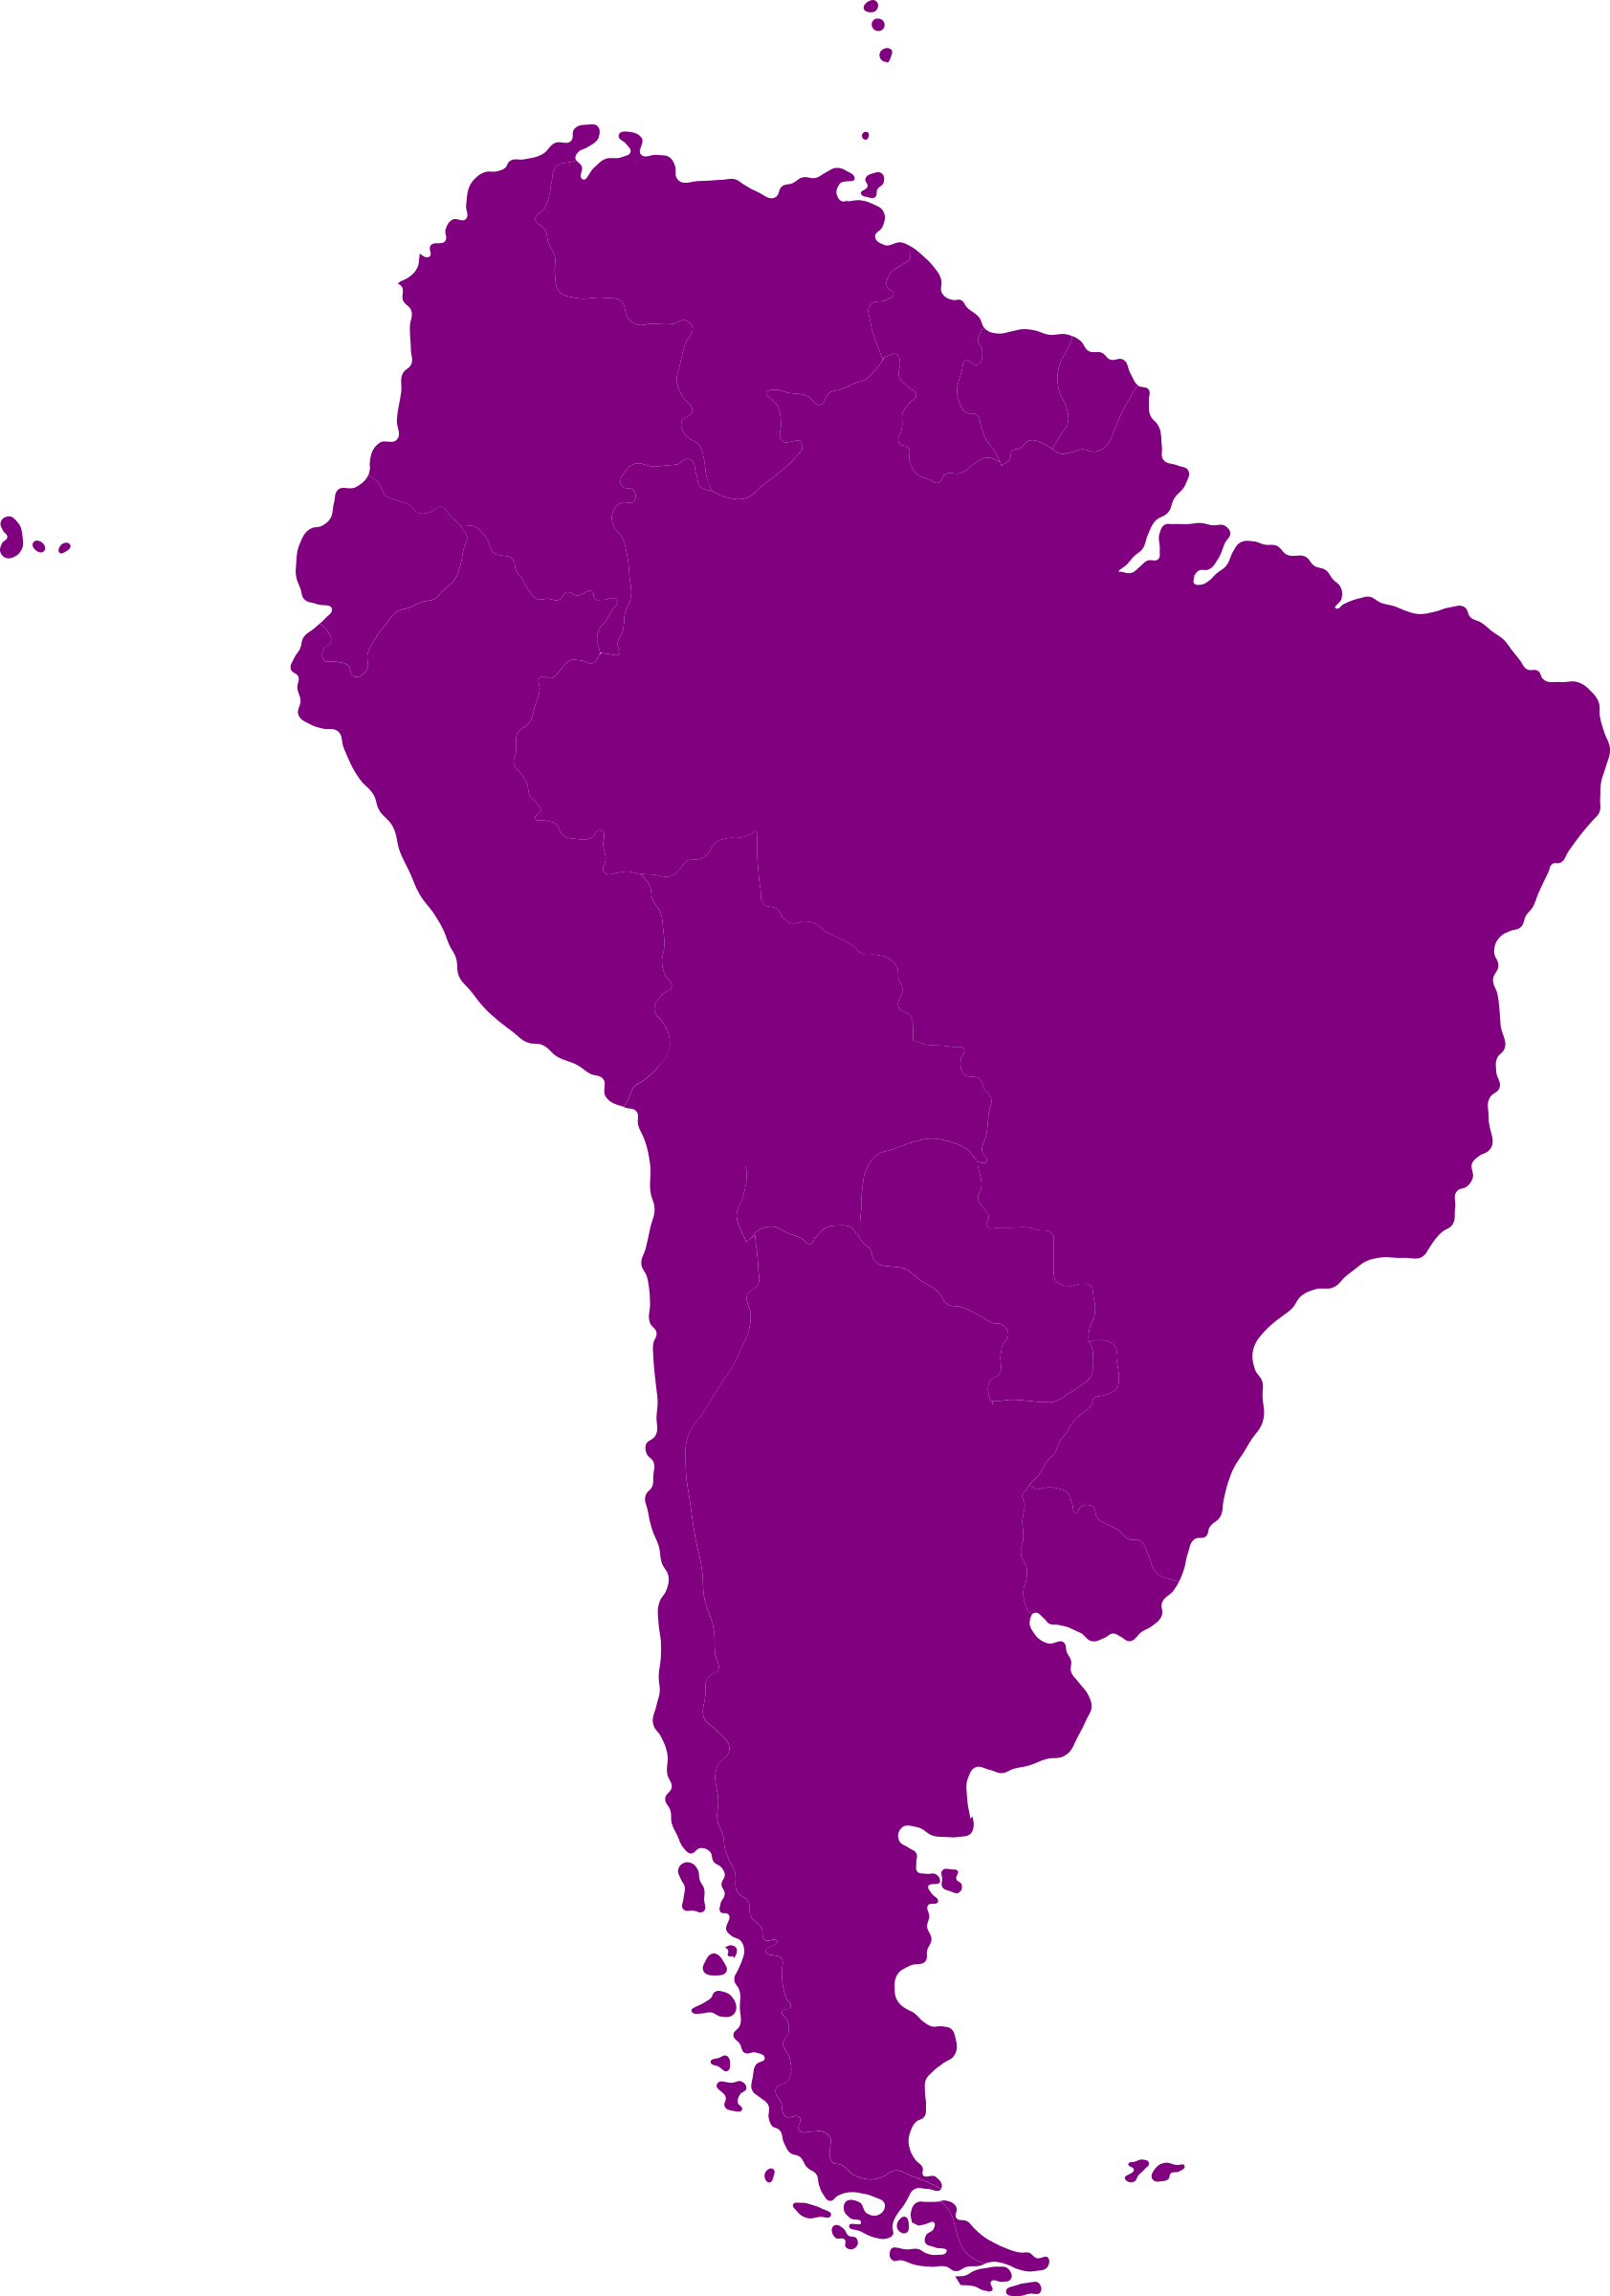 South american by iyo. Clipart map continent